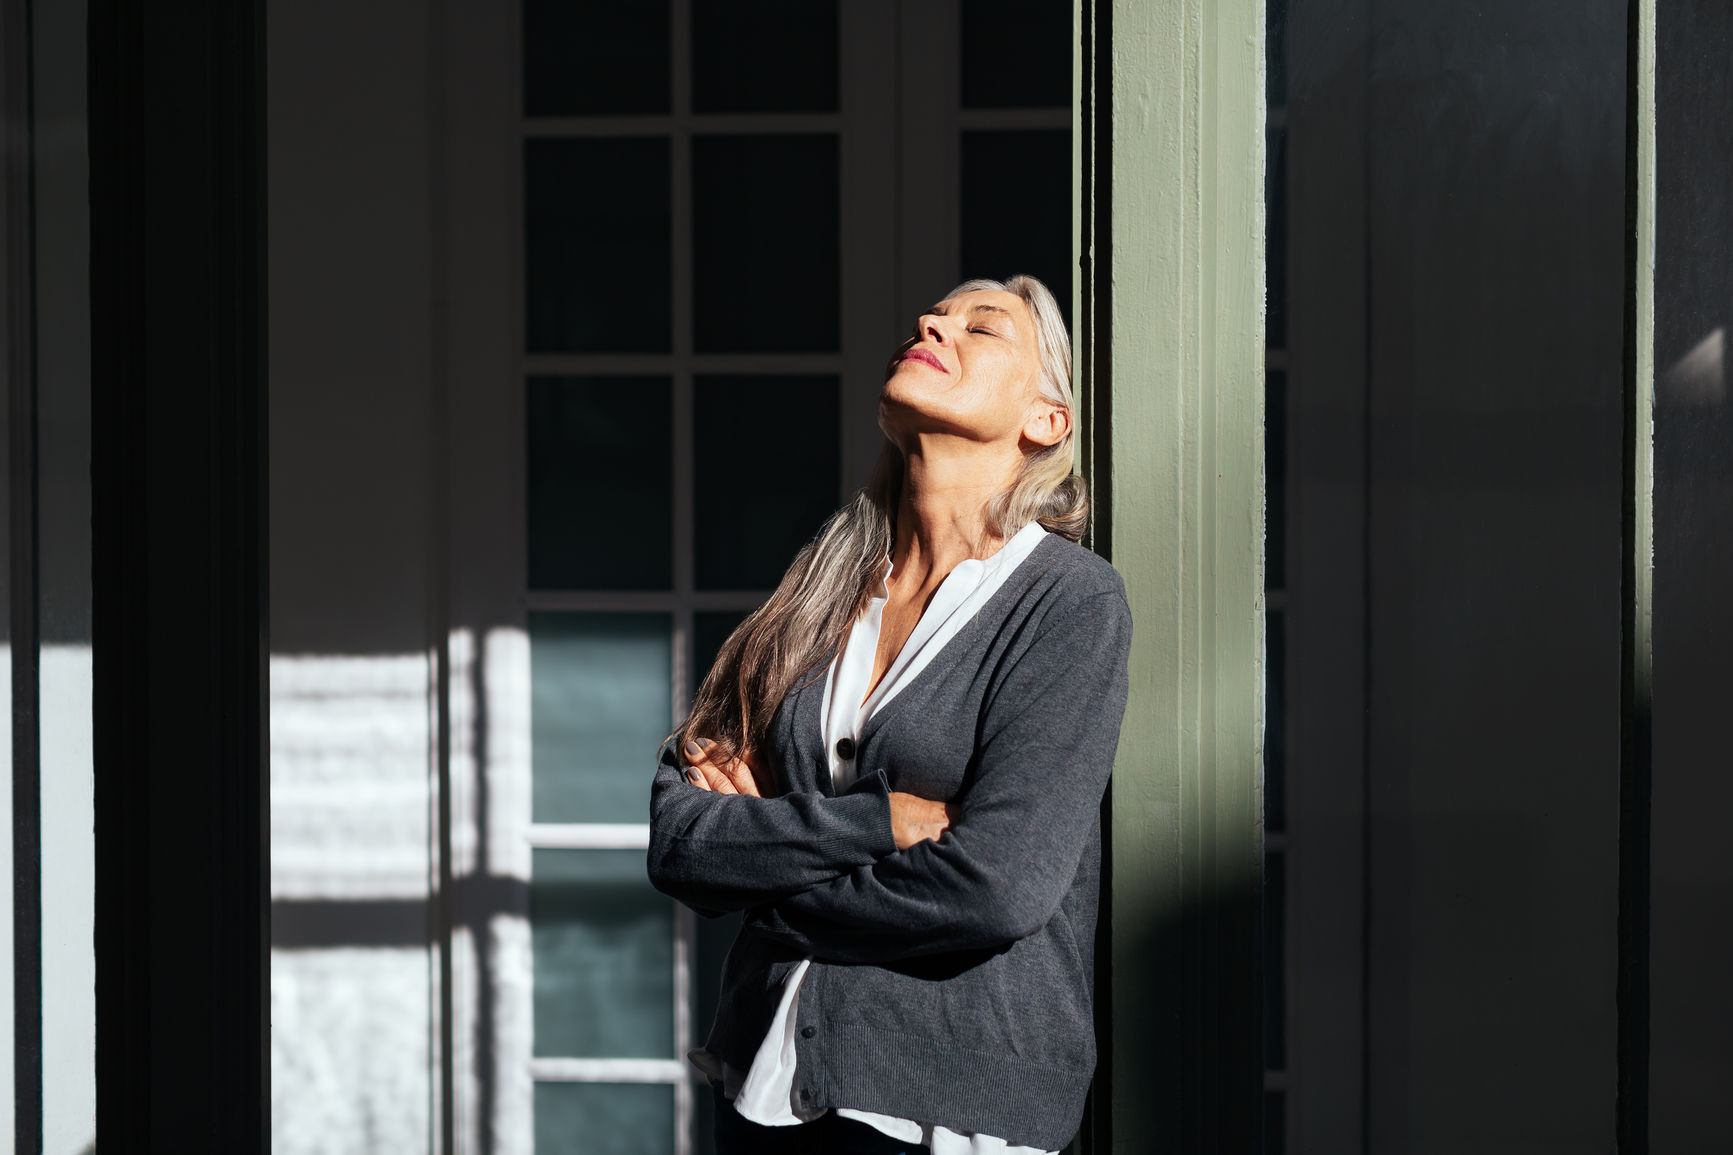 USC expert Kyle Konis's research found that being in a well-daylit space in the morning hours between 8 to 10 may help to reduce symptoms of depression and negative behaviors. (Photo/Stocksy)